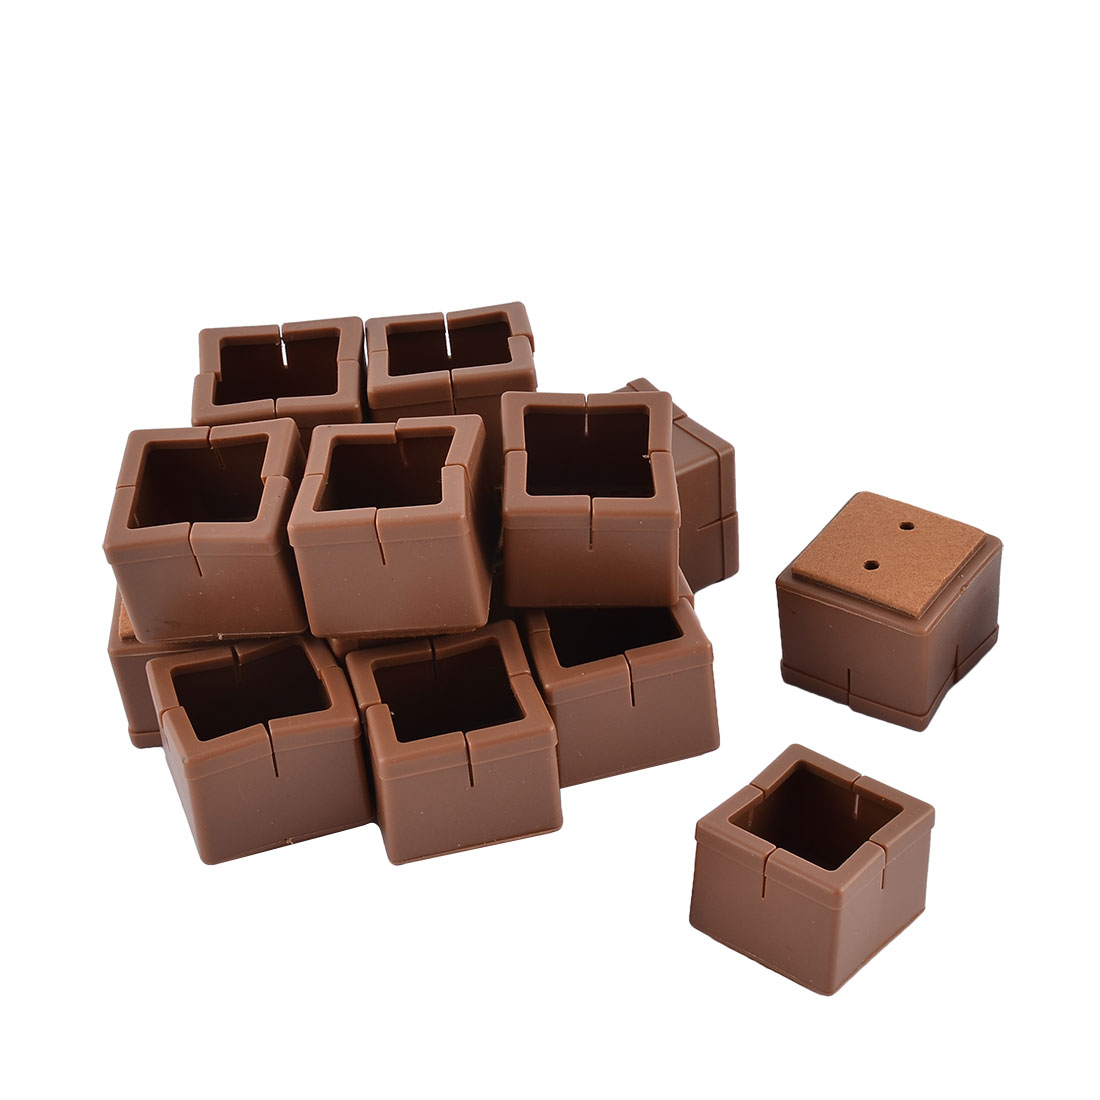 Silicone Square Shaped Table Leg End Cap Cover Coffee Color 3.8 x 3.8 x 3.3cm 16pcs